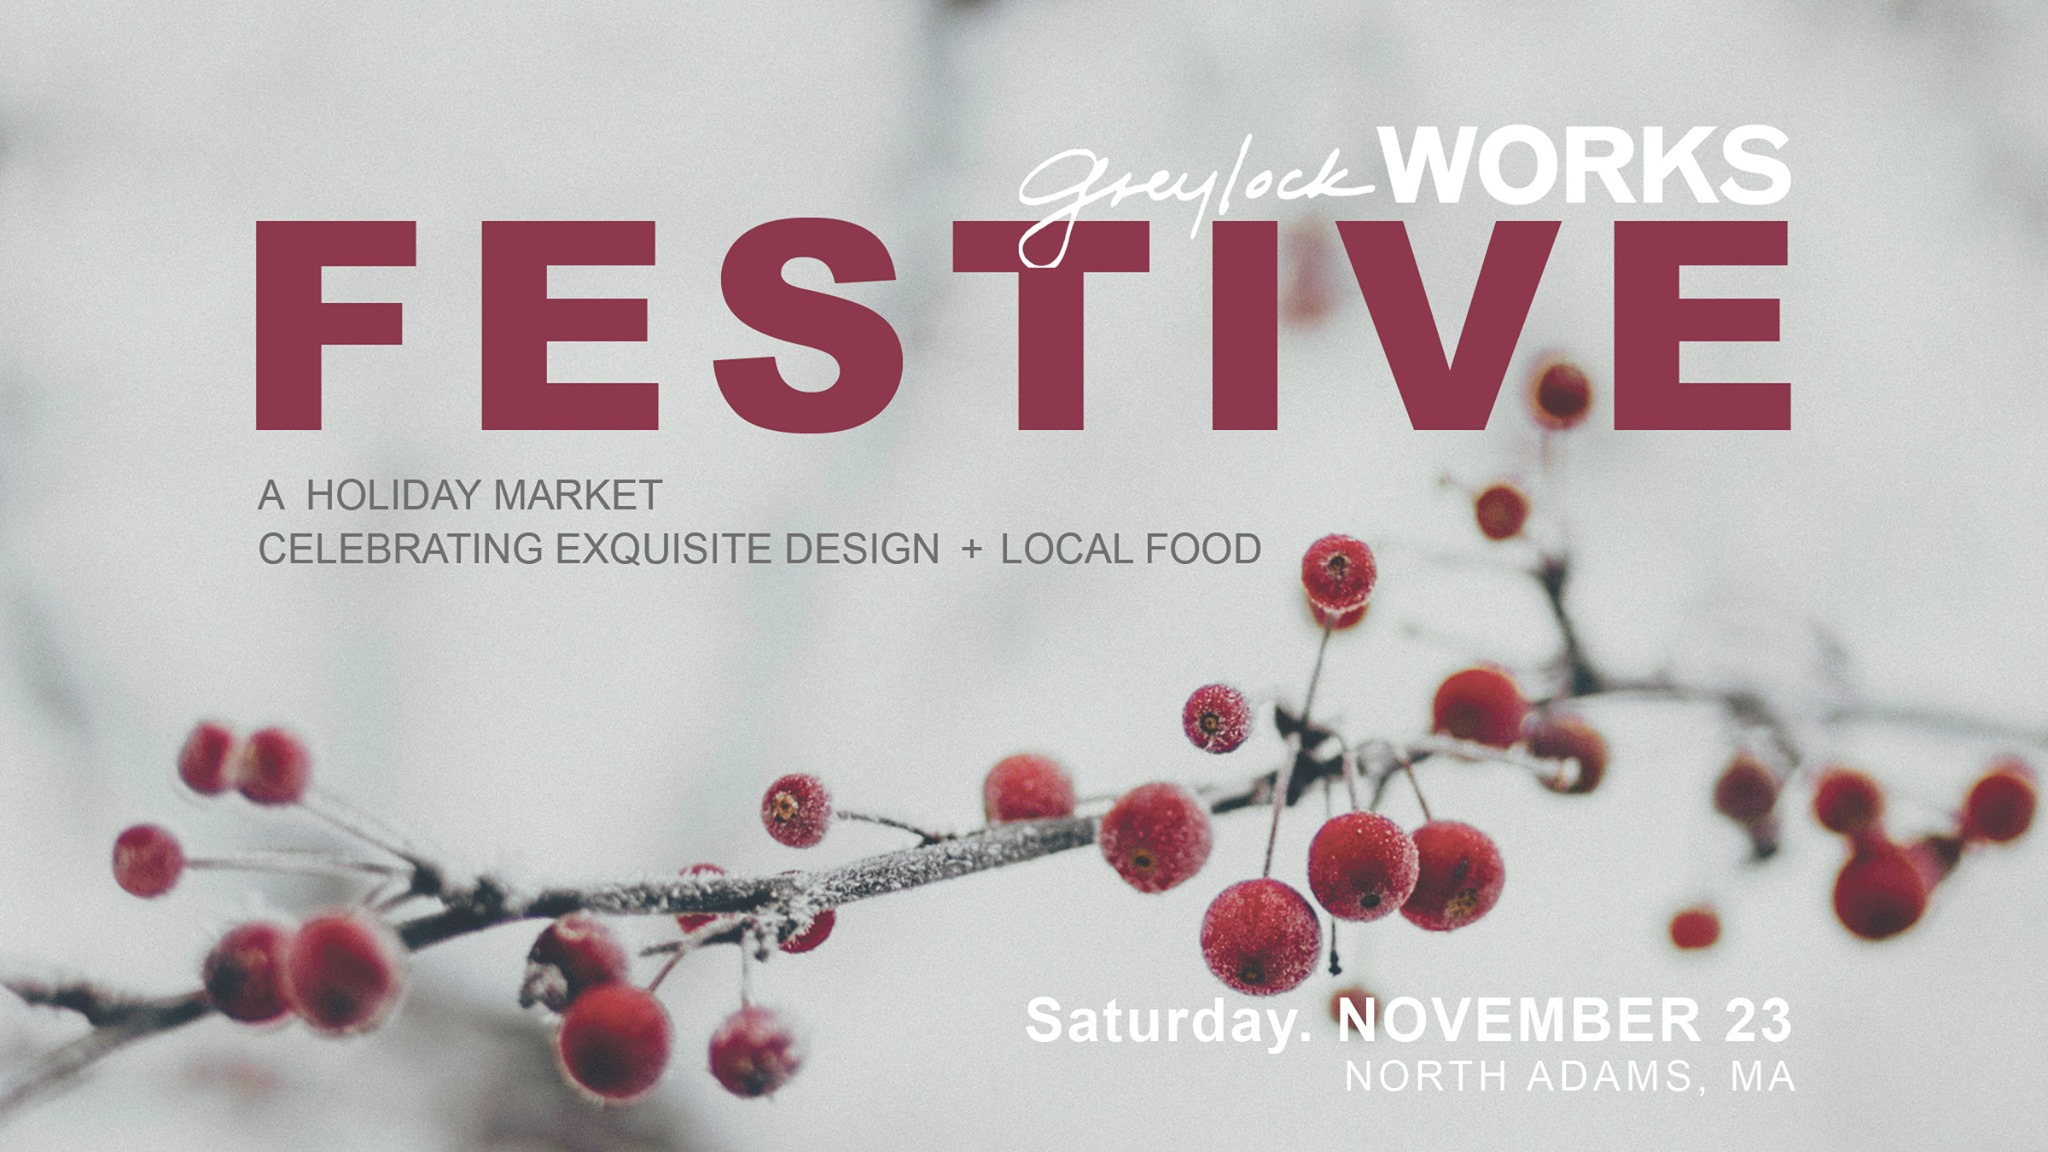 FESTIVE, a holiday market at Greylock WORKS November 23rd ></a><br>             </div><!-- .section-ad -->                                      <h2 class=